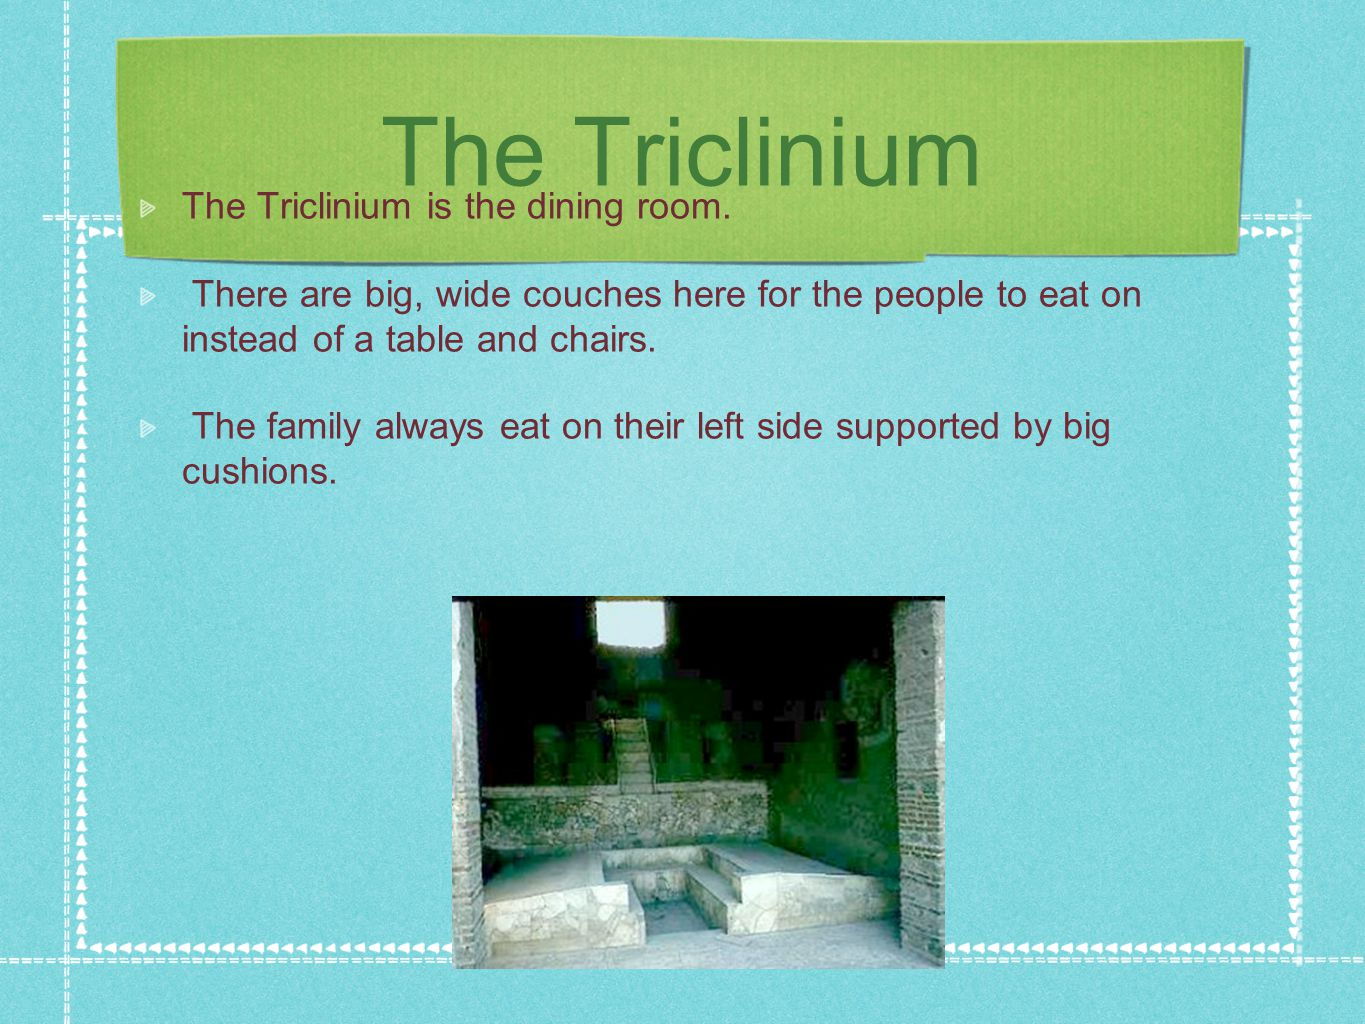 The Triclinium The Triclinium is the dining room.